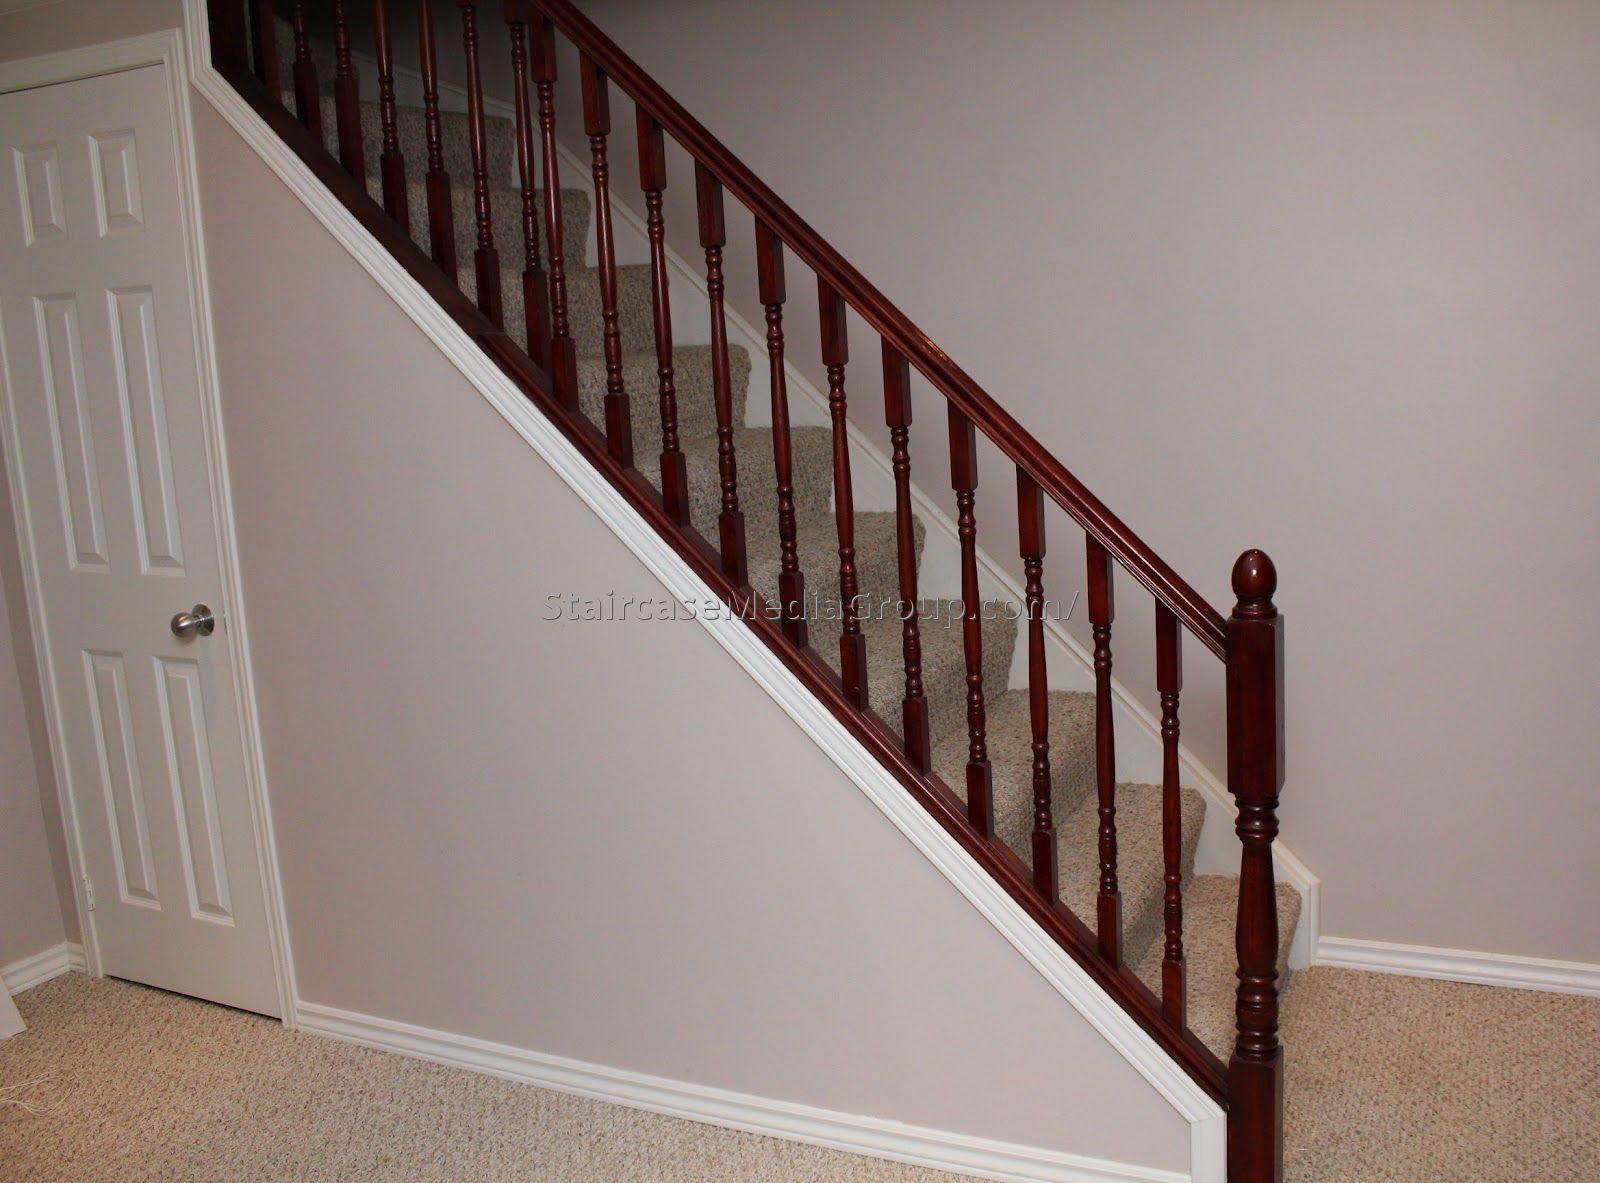 Diy Staircase Railing Best Ideas Design